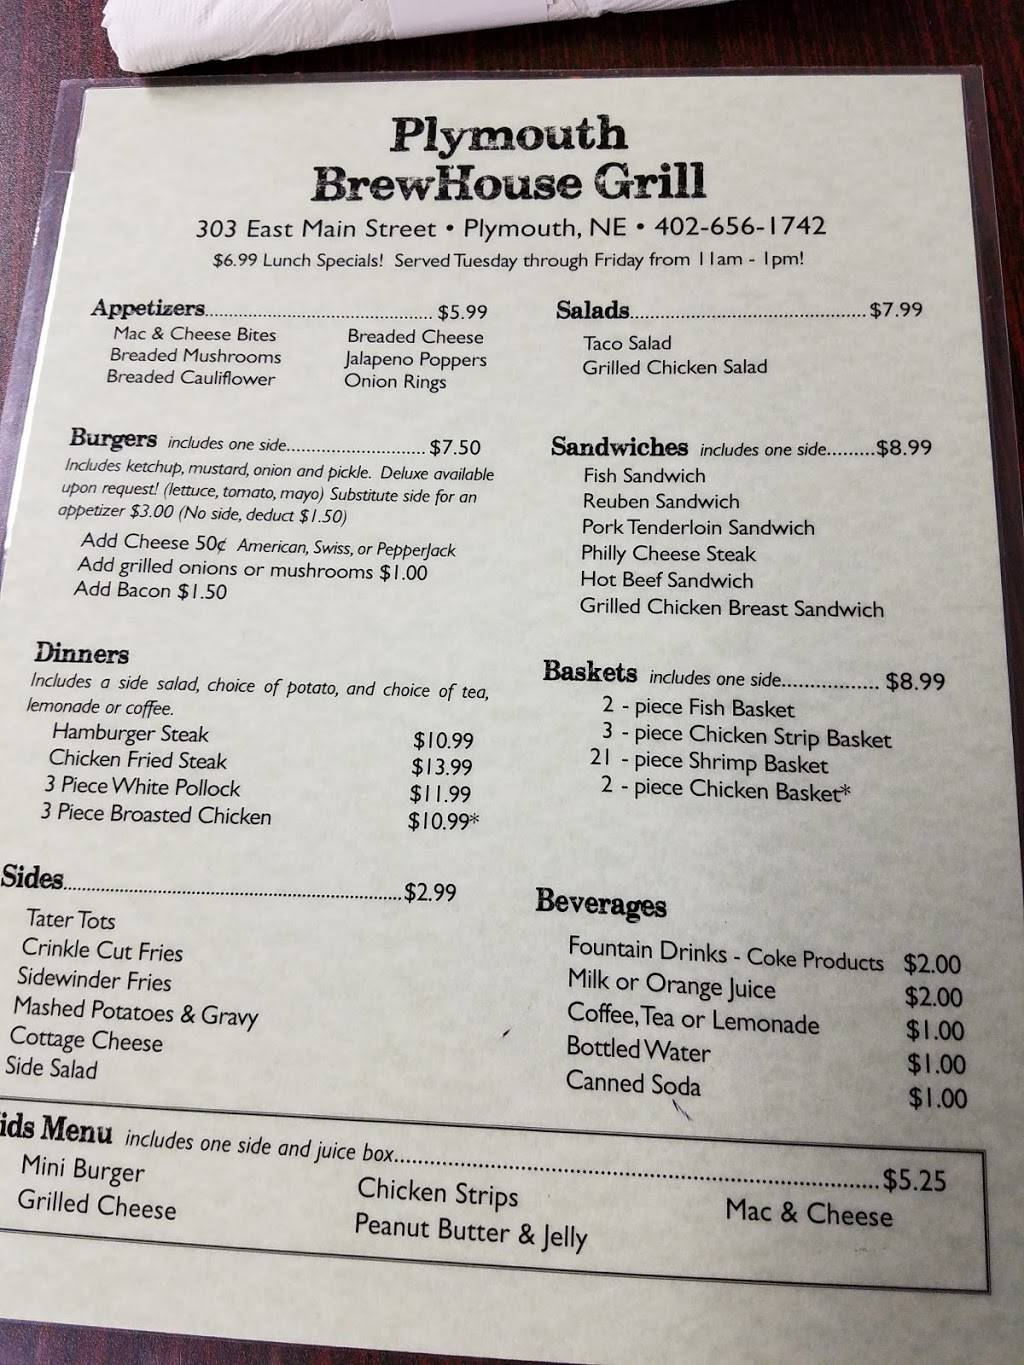 Plymouth BrewHouse Grill | restaurant | 303 East Main St, Plymouth, NE 68424, USA | 4026561742 OR +1 402-656-1742